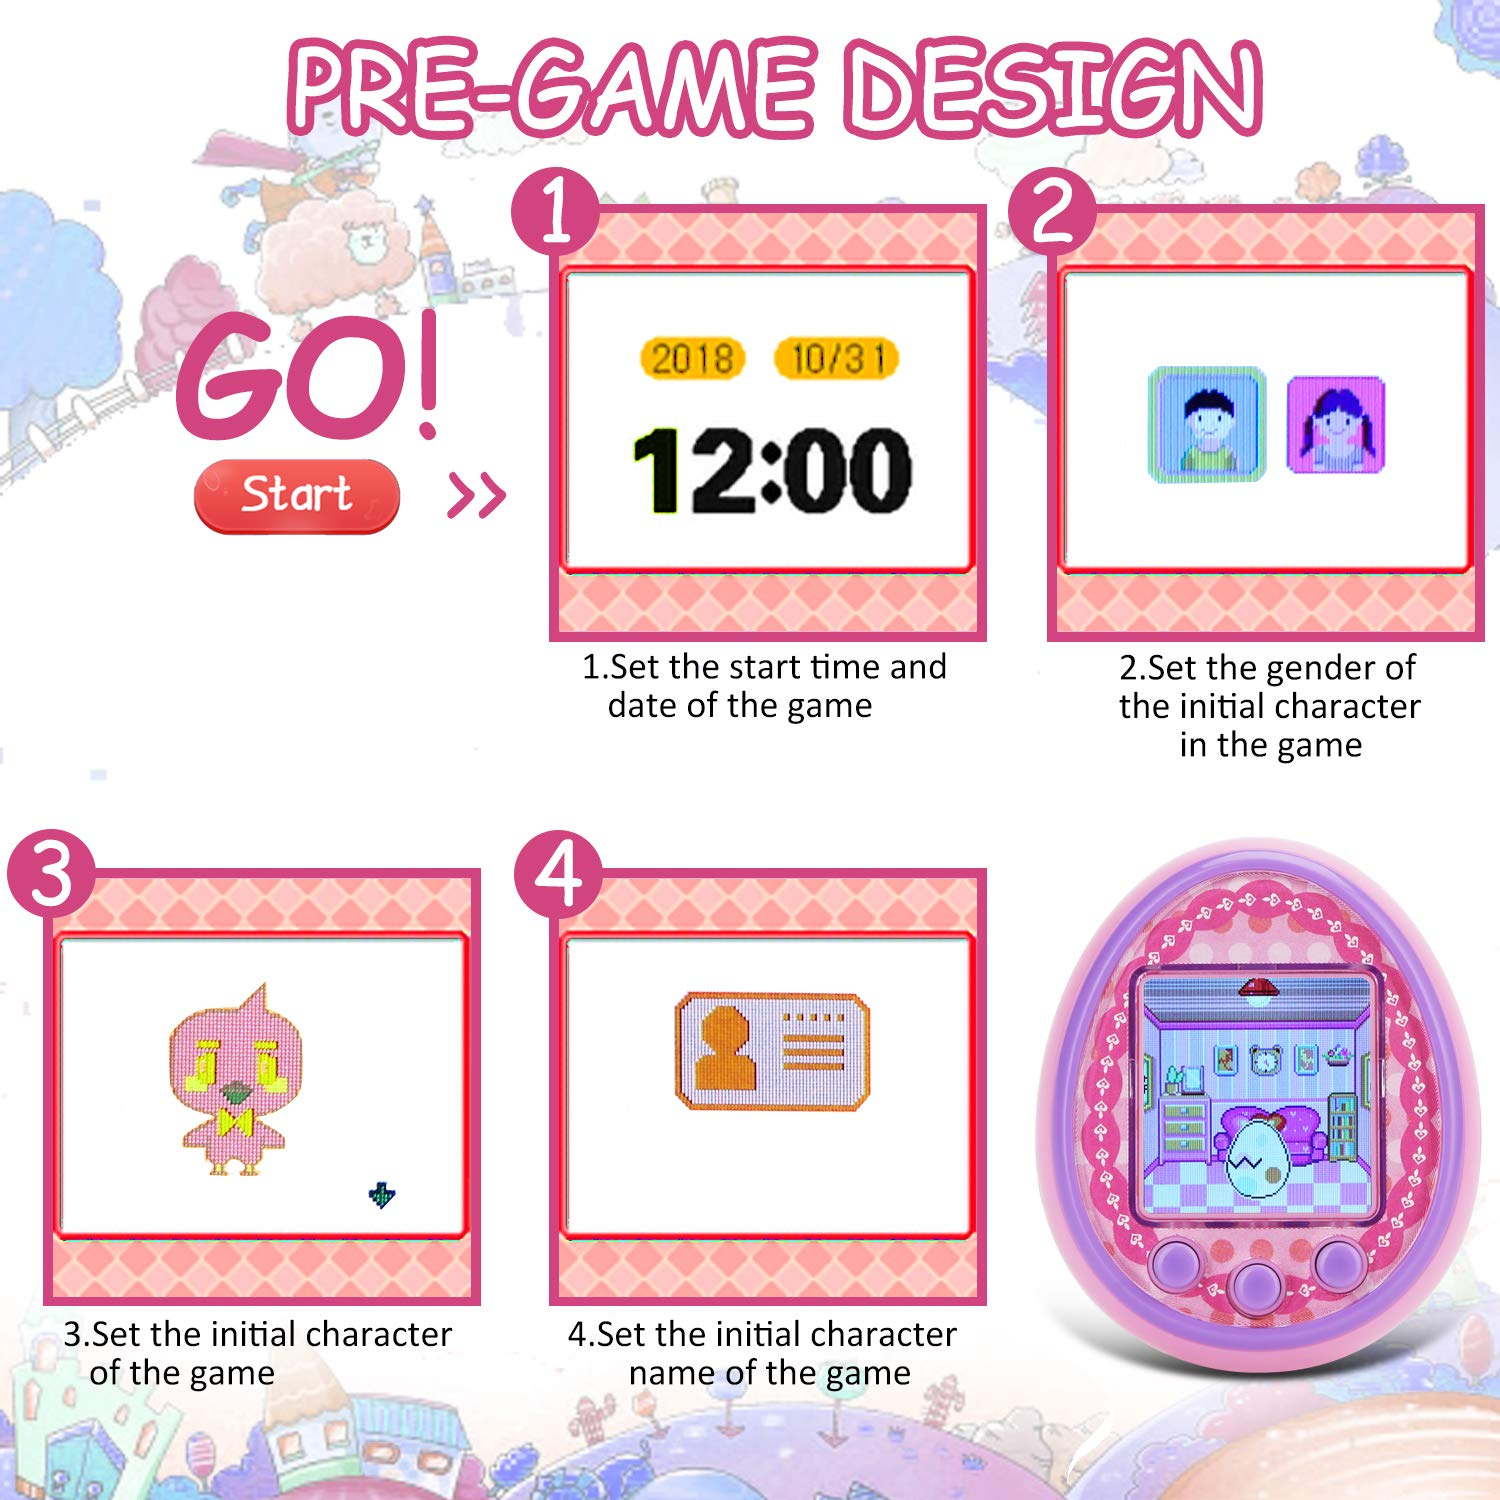 Virtual Digital Pets Toys Electronic Pets Game Machine HD Color Screen for Over 6 Years Old Child Toy 2019 New Version as a Best Birthday Gift for Boys Girls by Touma pets (Image #3)